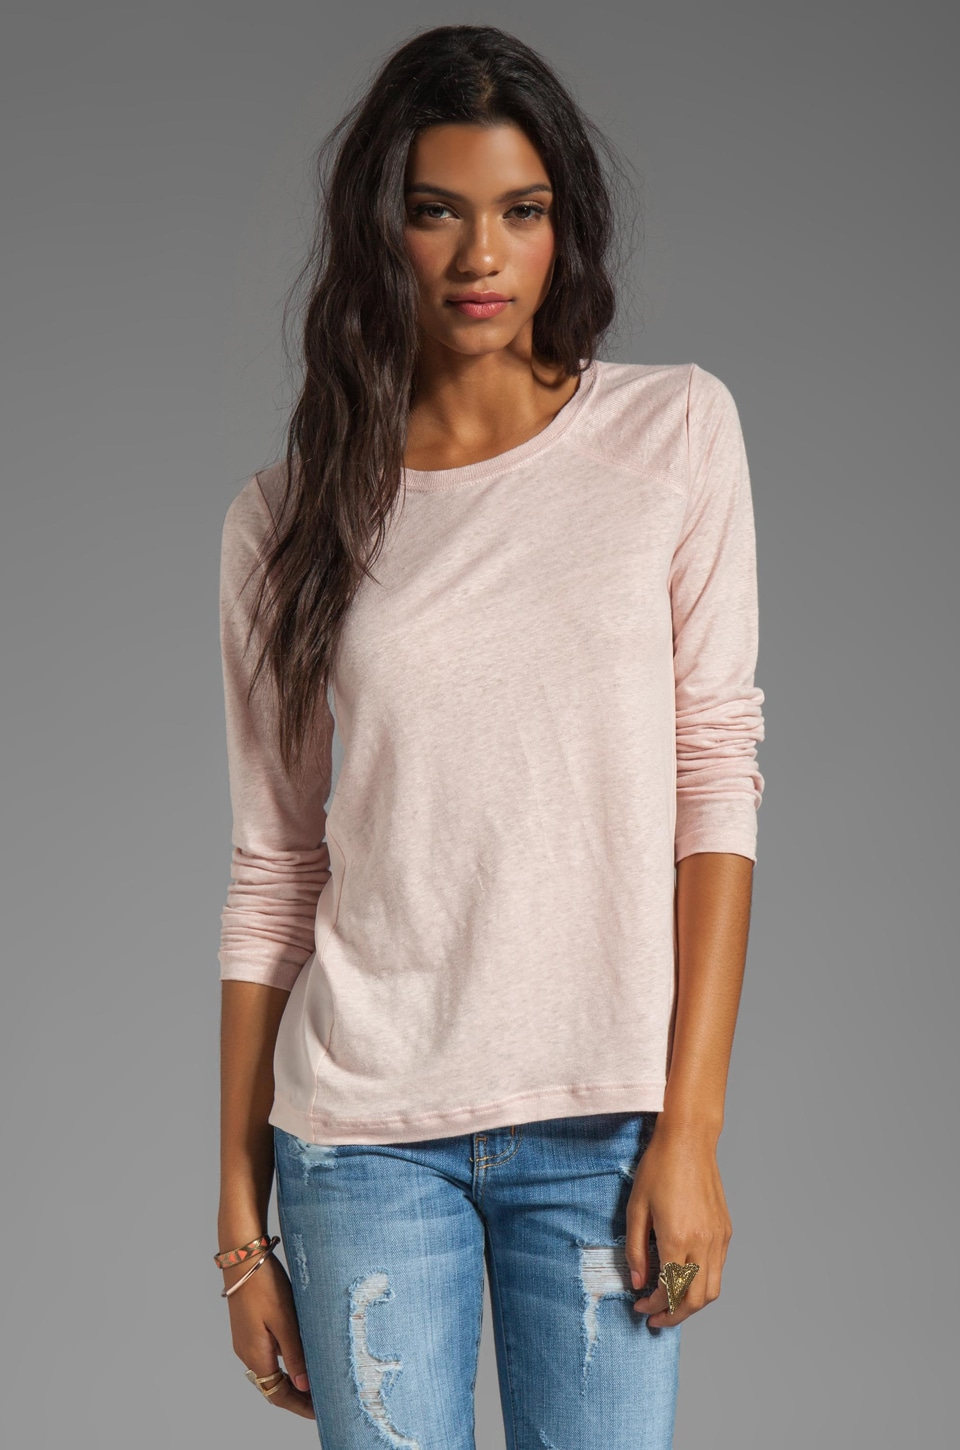 Marc by Marc Jacobs Martha Jersey Long Sleeve Top in Tile Pink